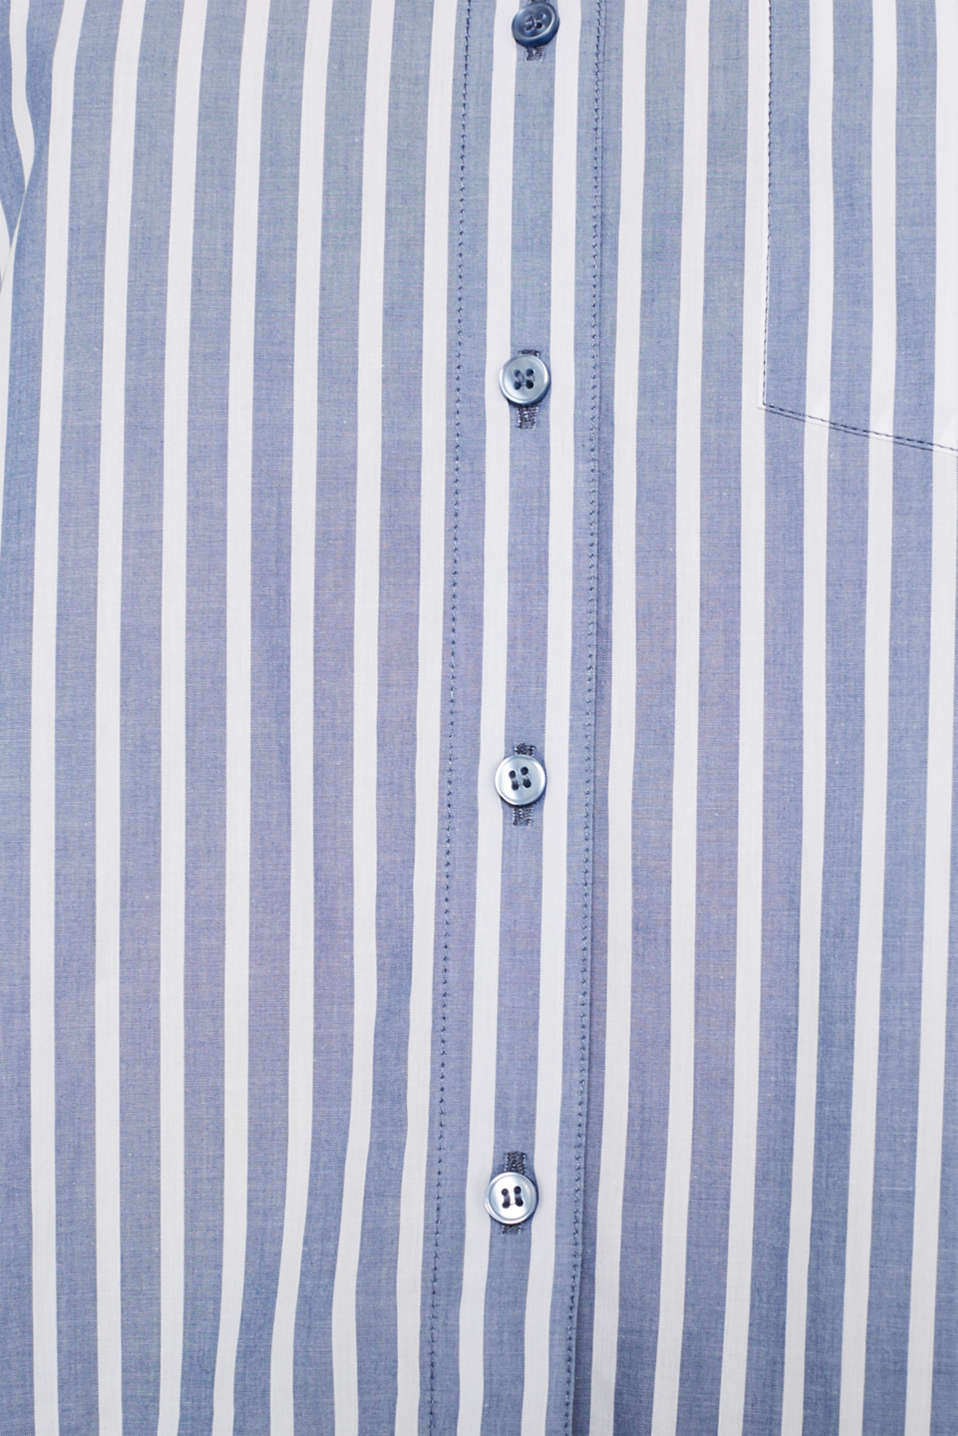 Blouse with stripes, 100% cotton, BLUE, detail image number 4